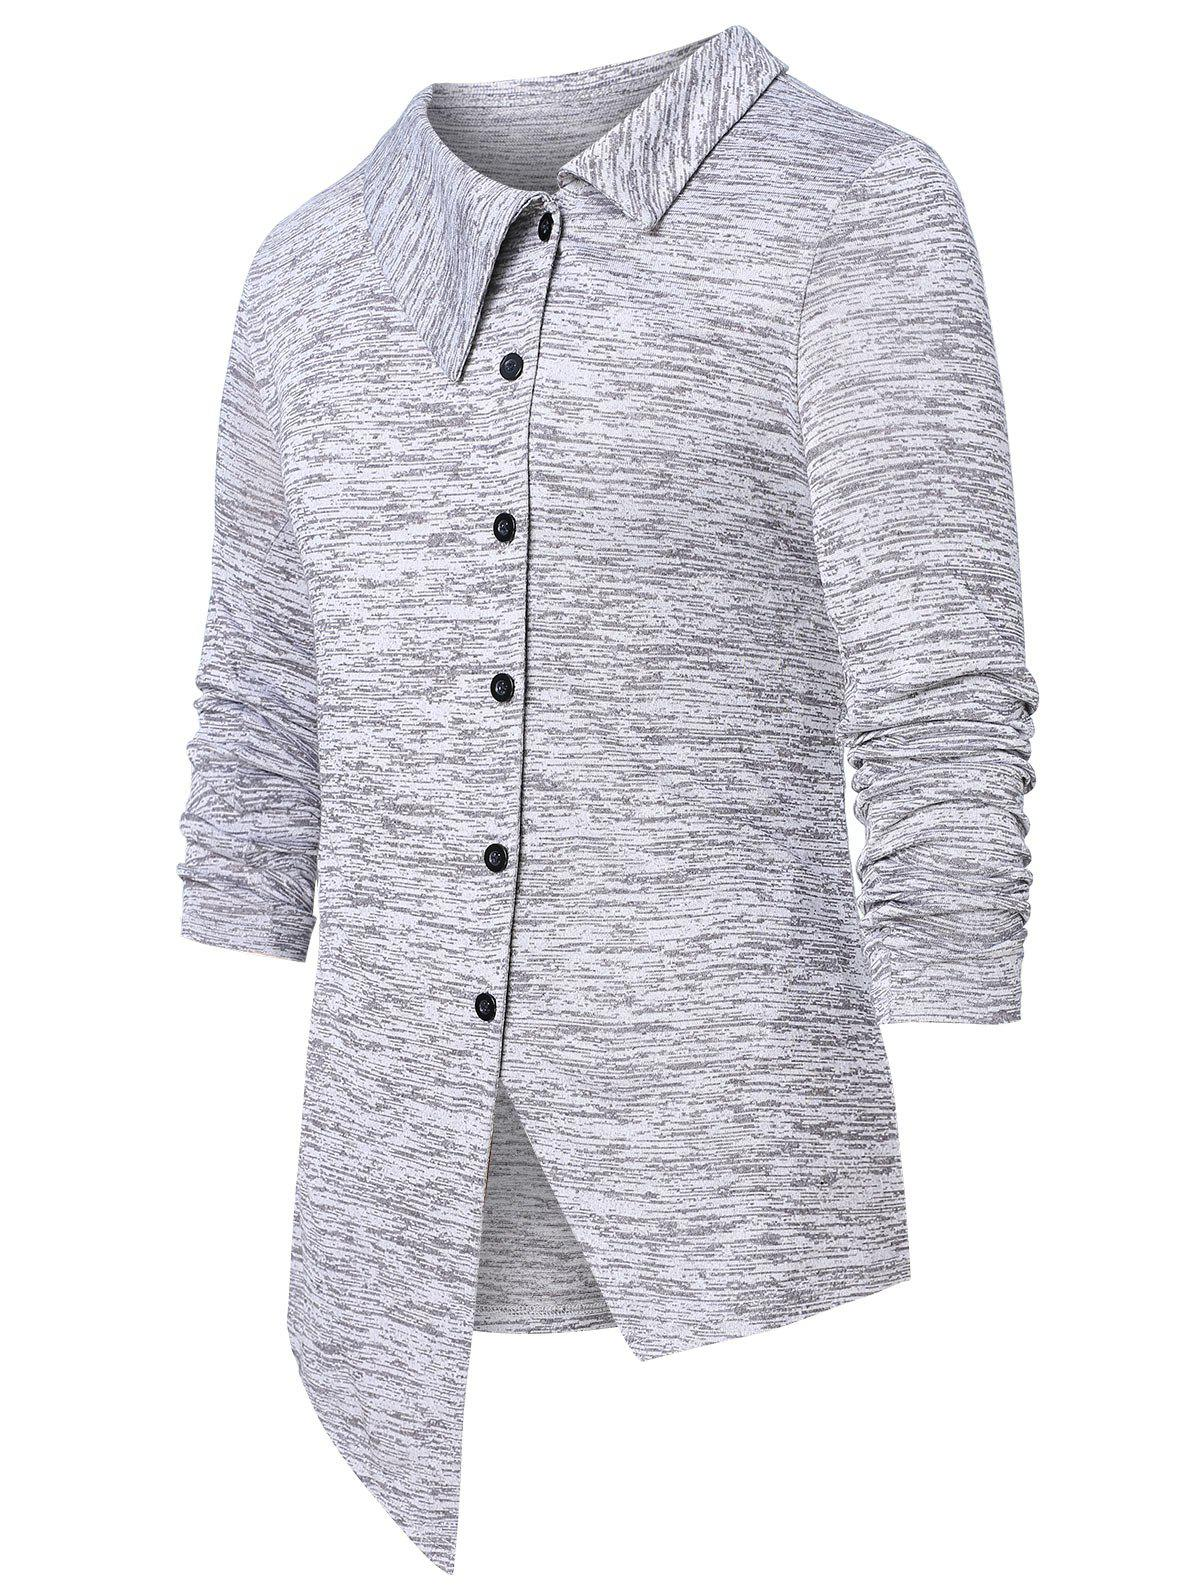 Shops Asymmetric Space Dye Button Up Cardigan